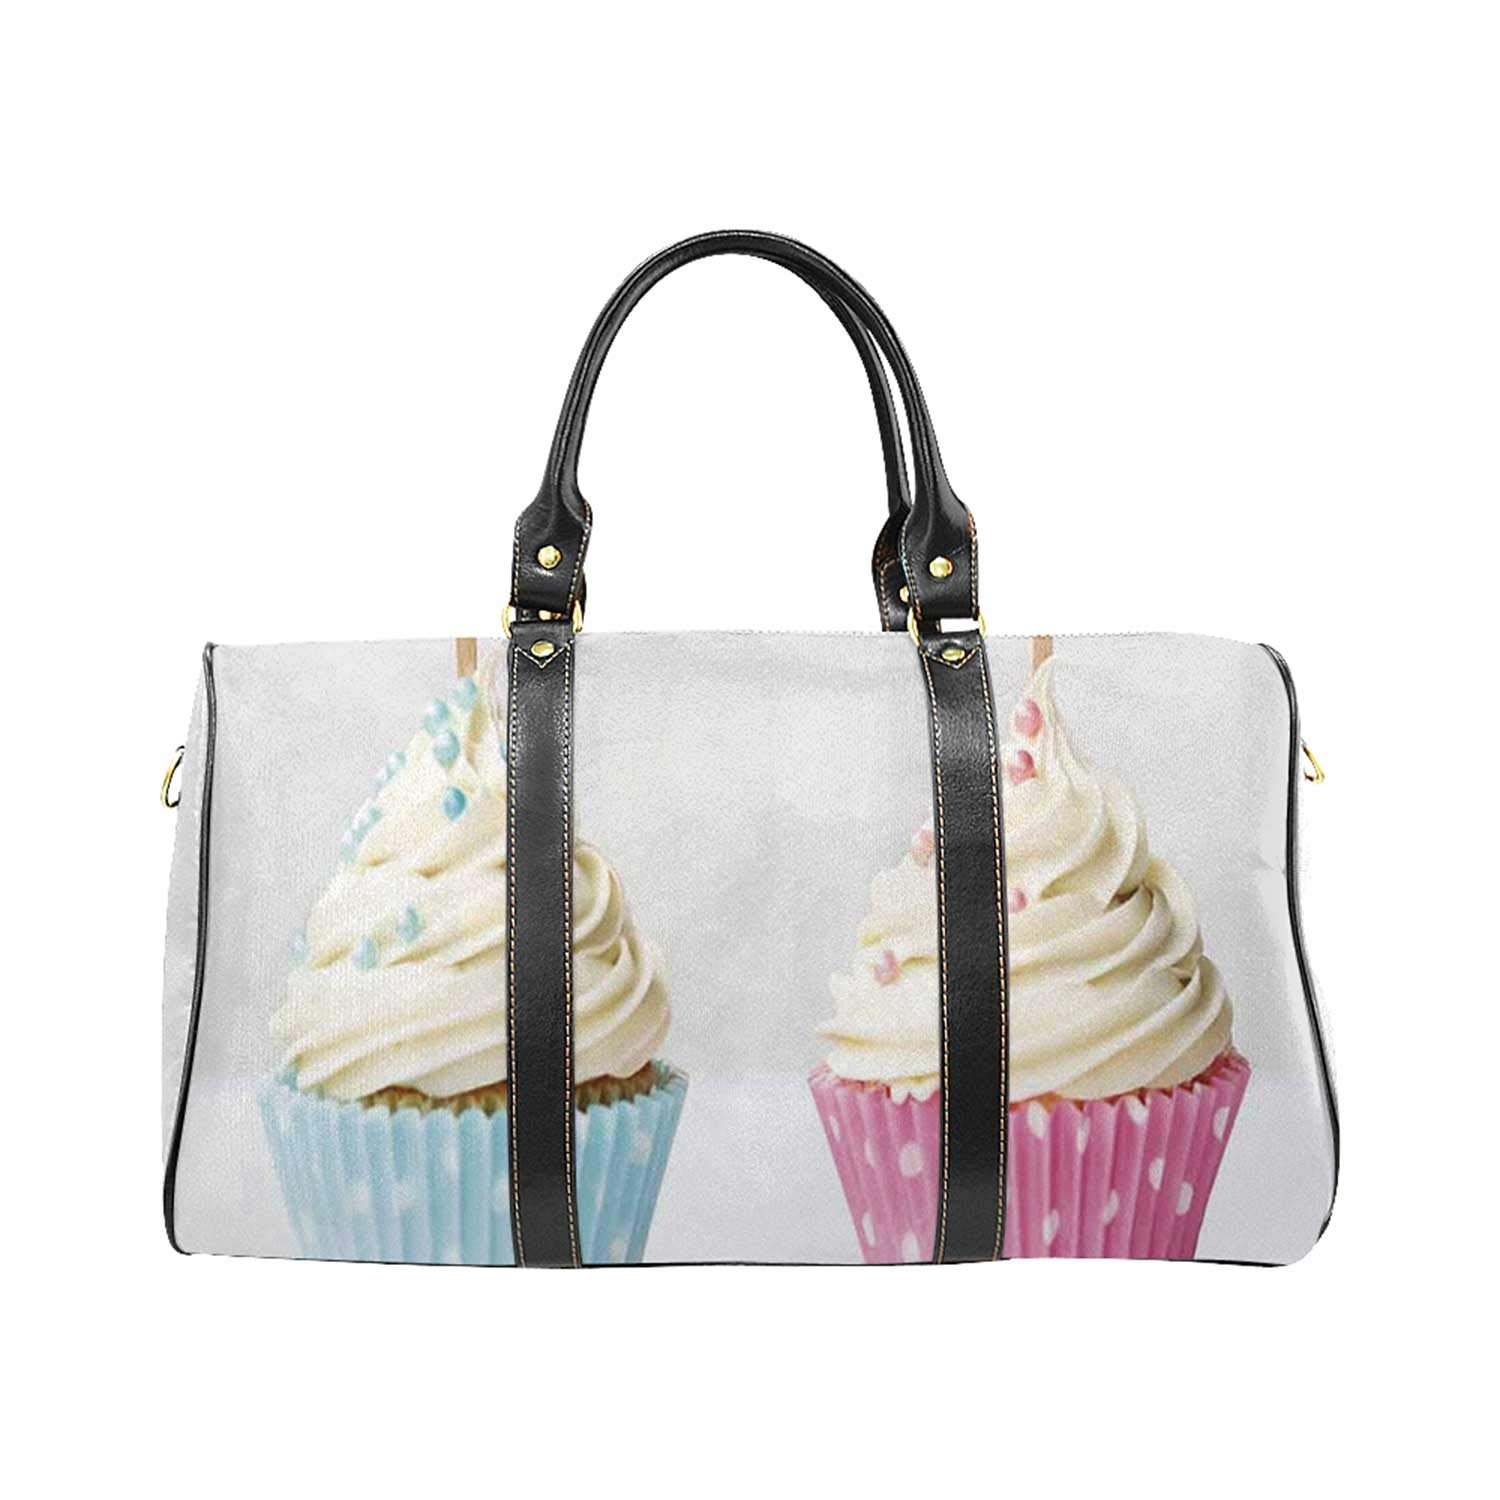 Gender Reveal Exquisite Travel Bag,Boy and Girl with Cupcakes Yummy Chocolate Celebration Theme for College by YOLIYANA